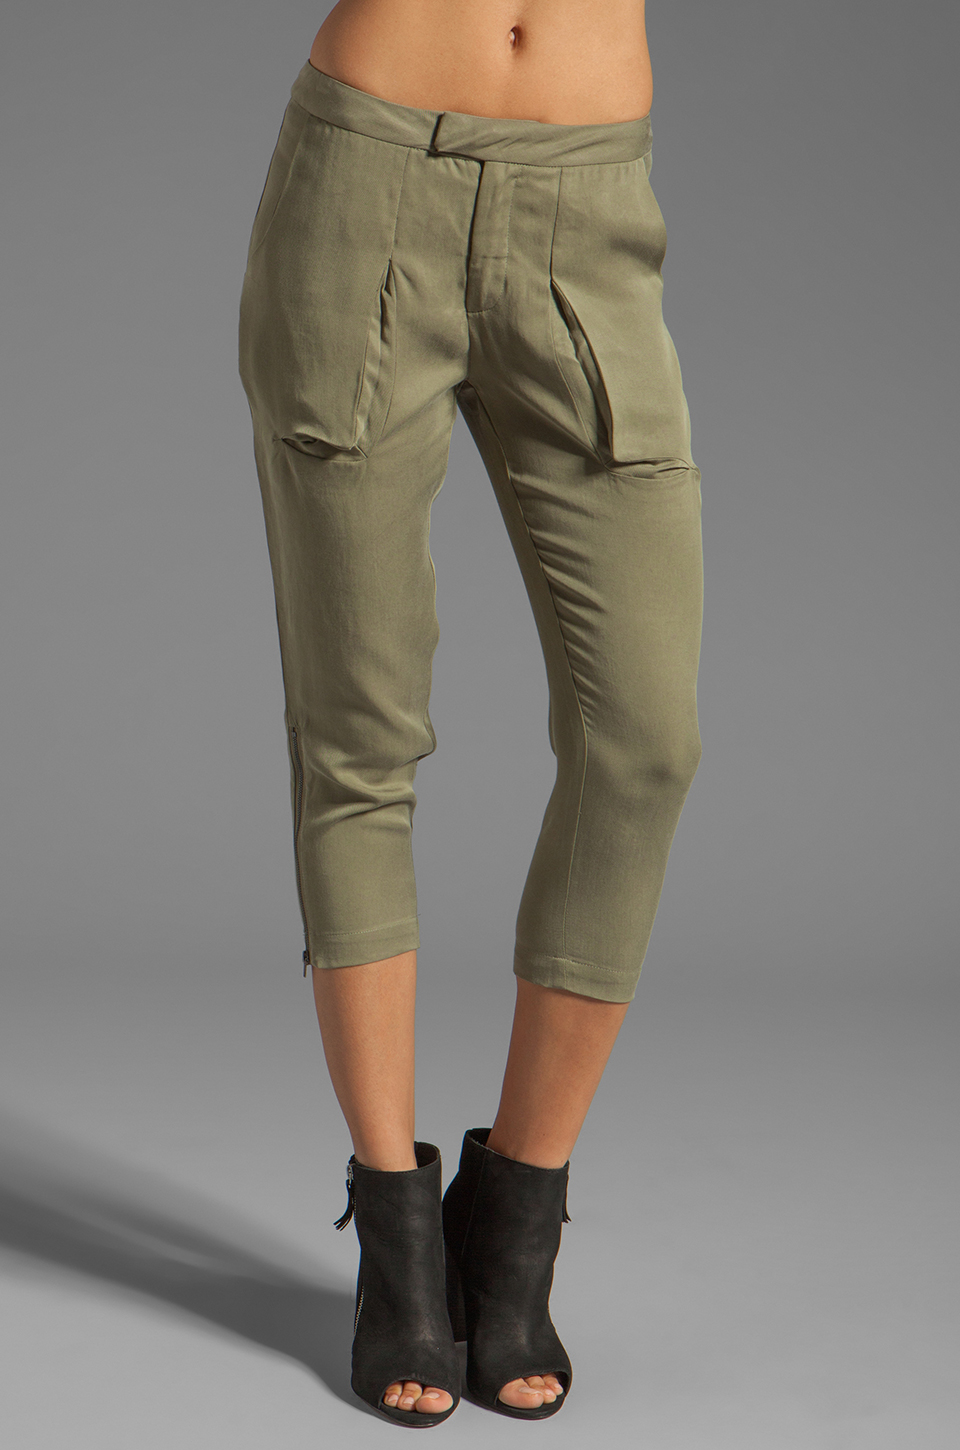 Funktional Slit Pocket Pants in Olive Opacity